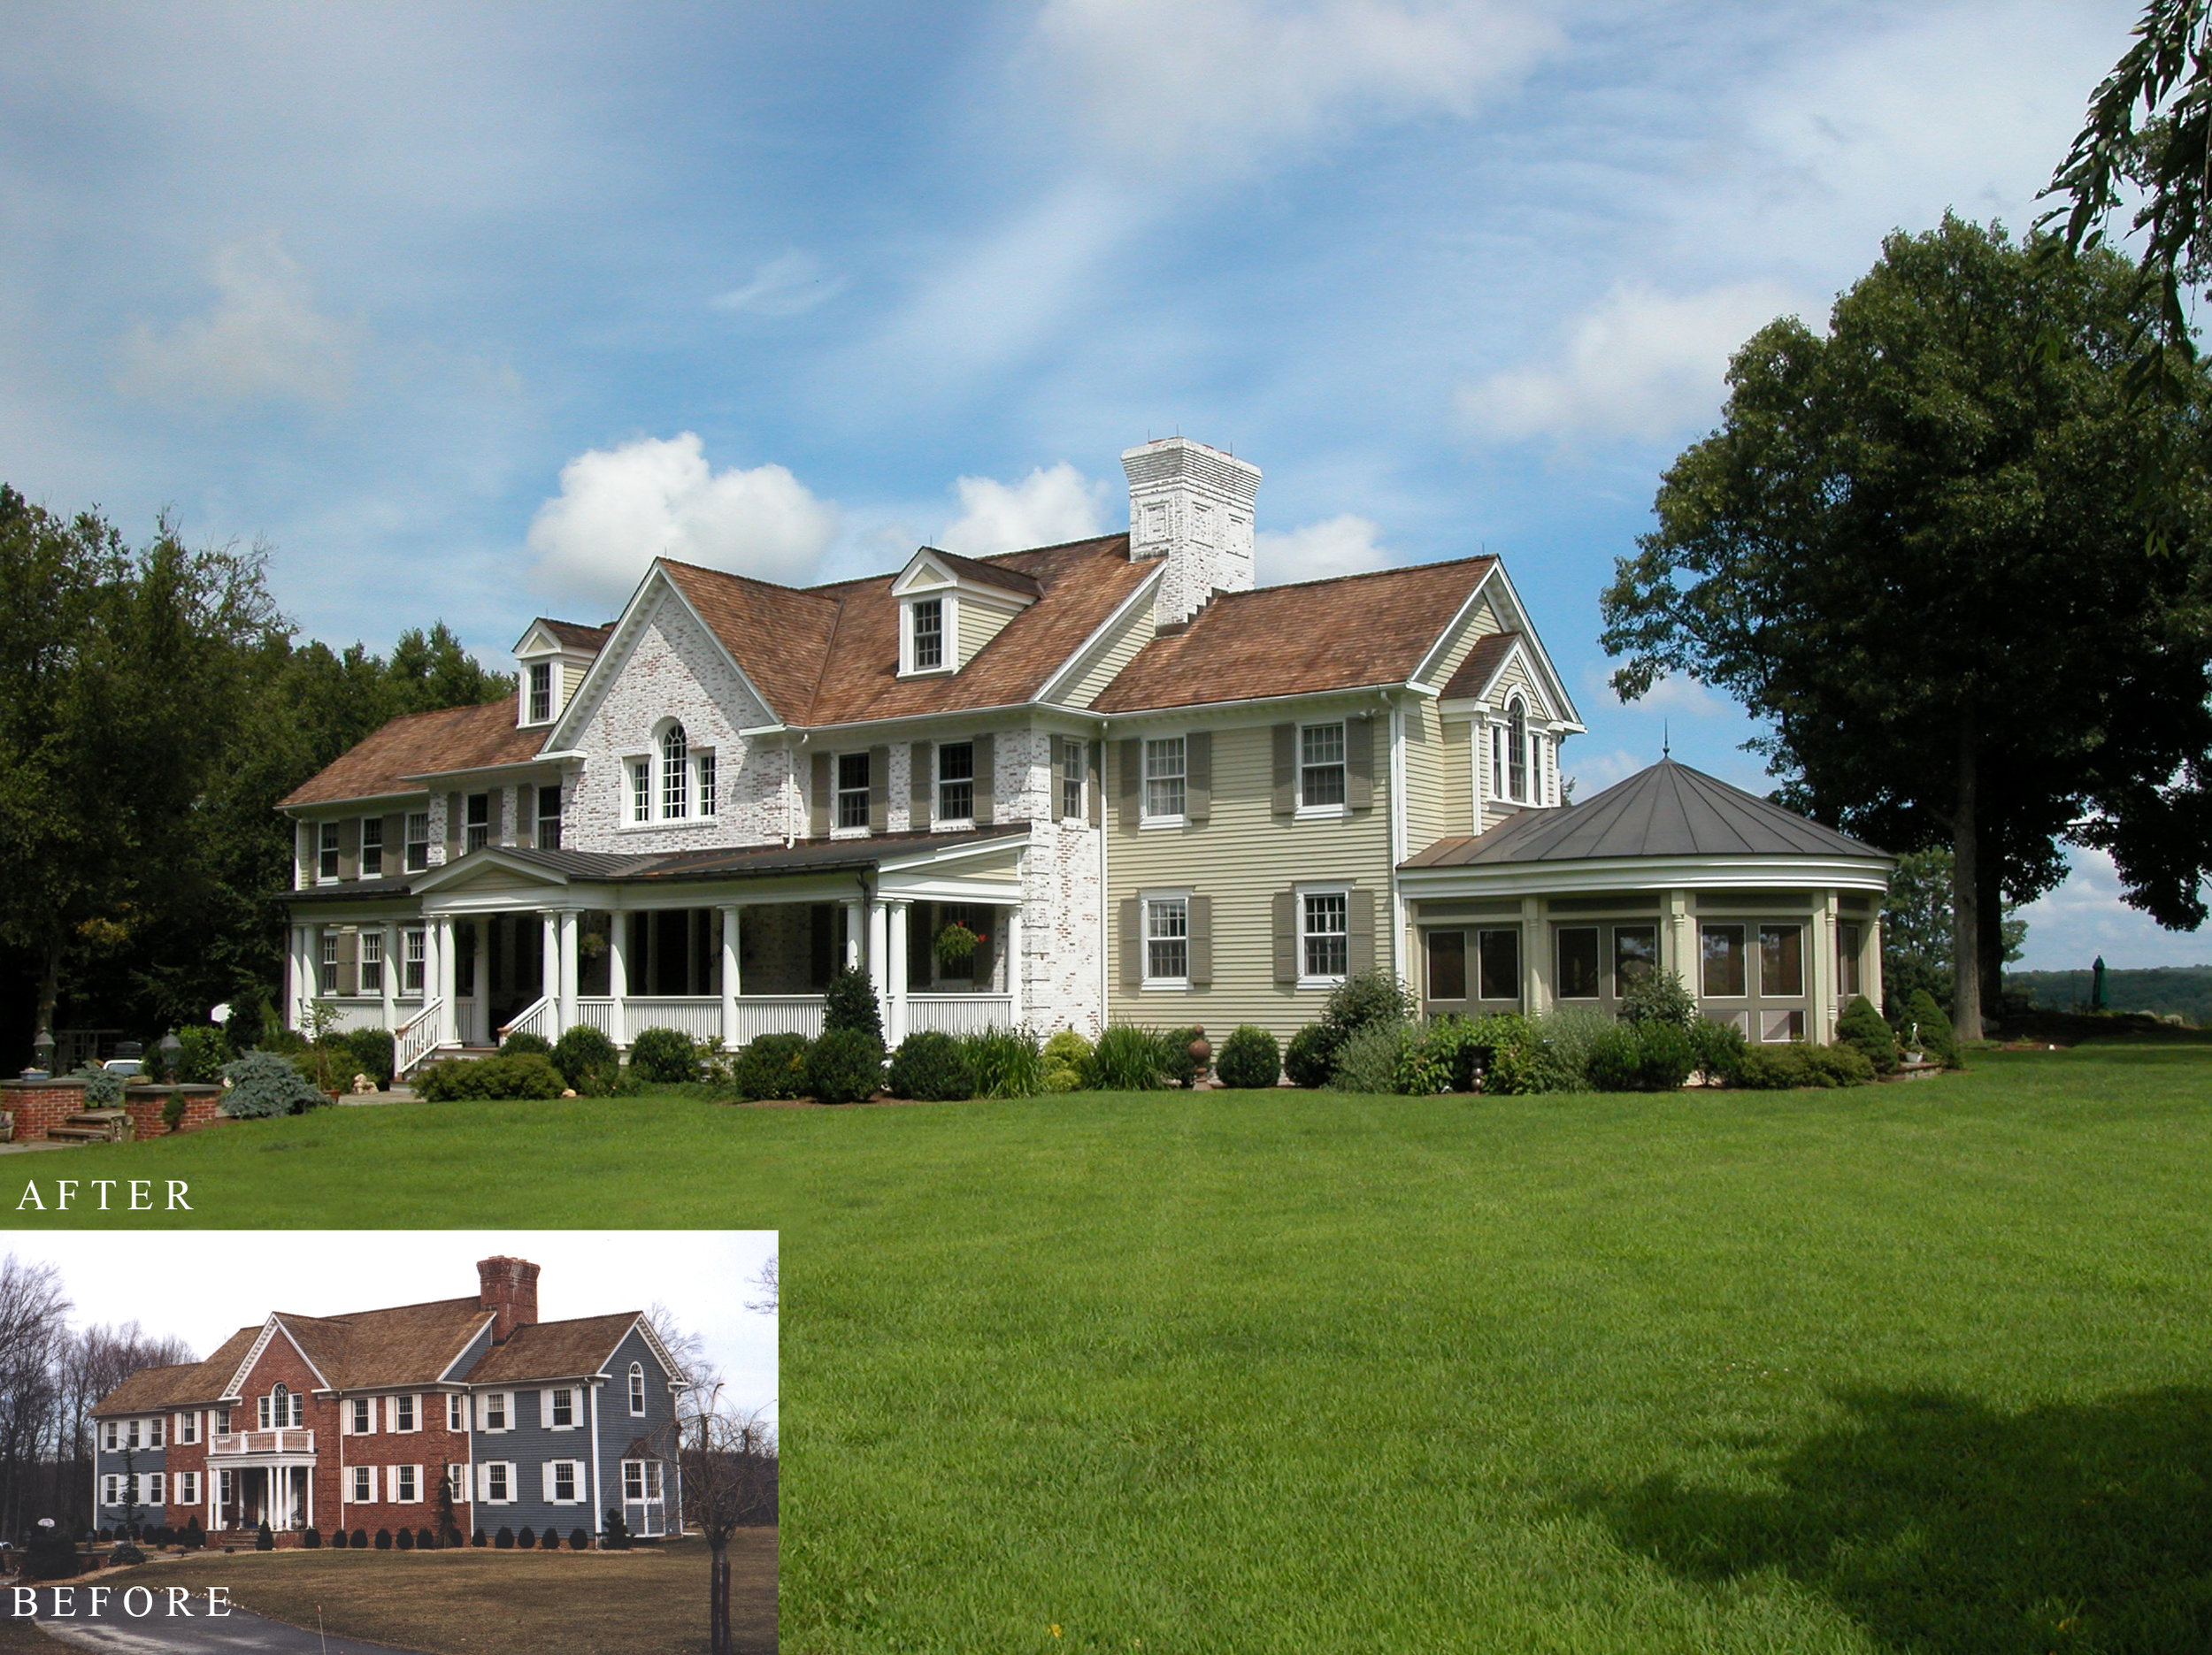 Before & After_Meehl_Main House.jpg